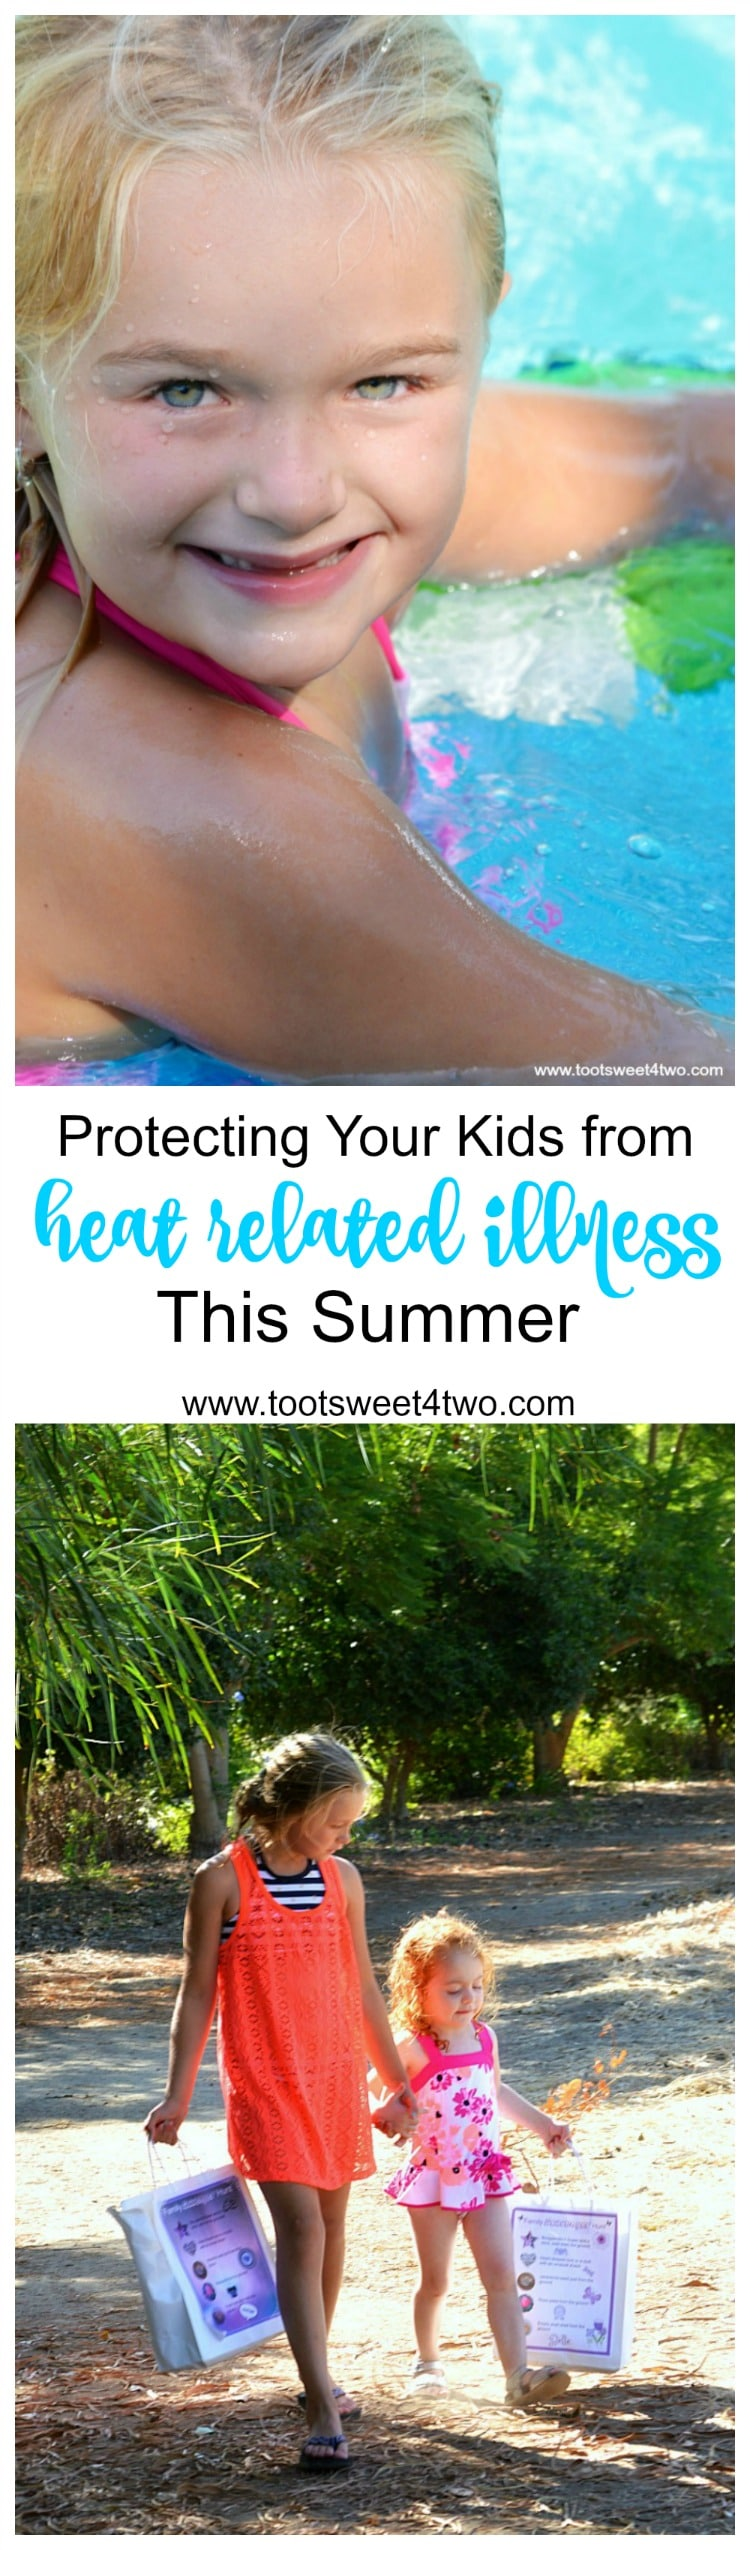 The summer sun may feel fantastic on your skin, but too much of a good thing can be dangerous for your health. Children, in particular, are vulnerable to heat-related illness because of their small body size. To protect your kids from heat related illness this summer, follow these simple tips. | www.tootsweet4two.com